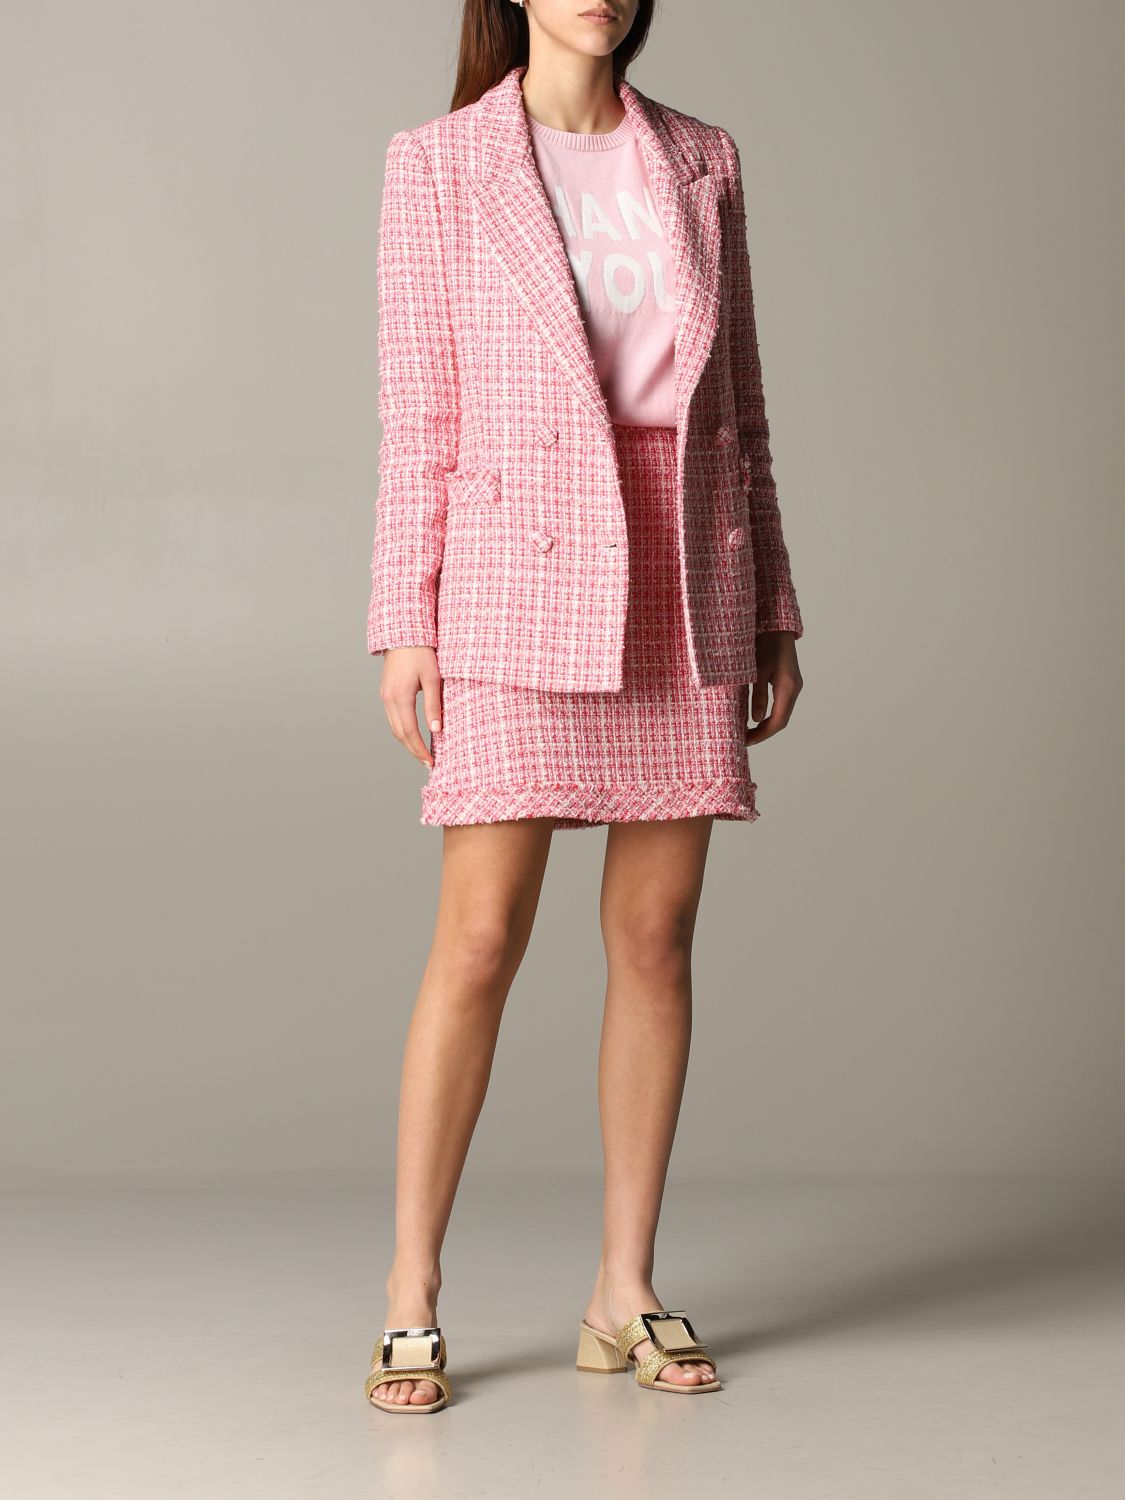 Be Blumarine double-breasted bouclé jacket pink 2